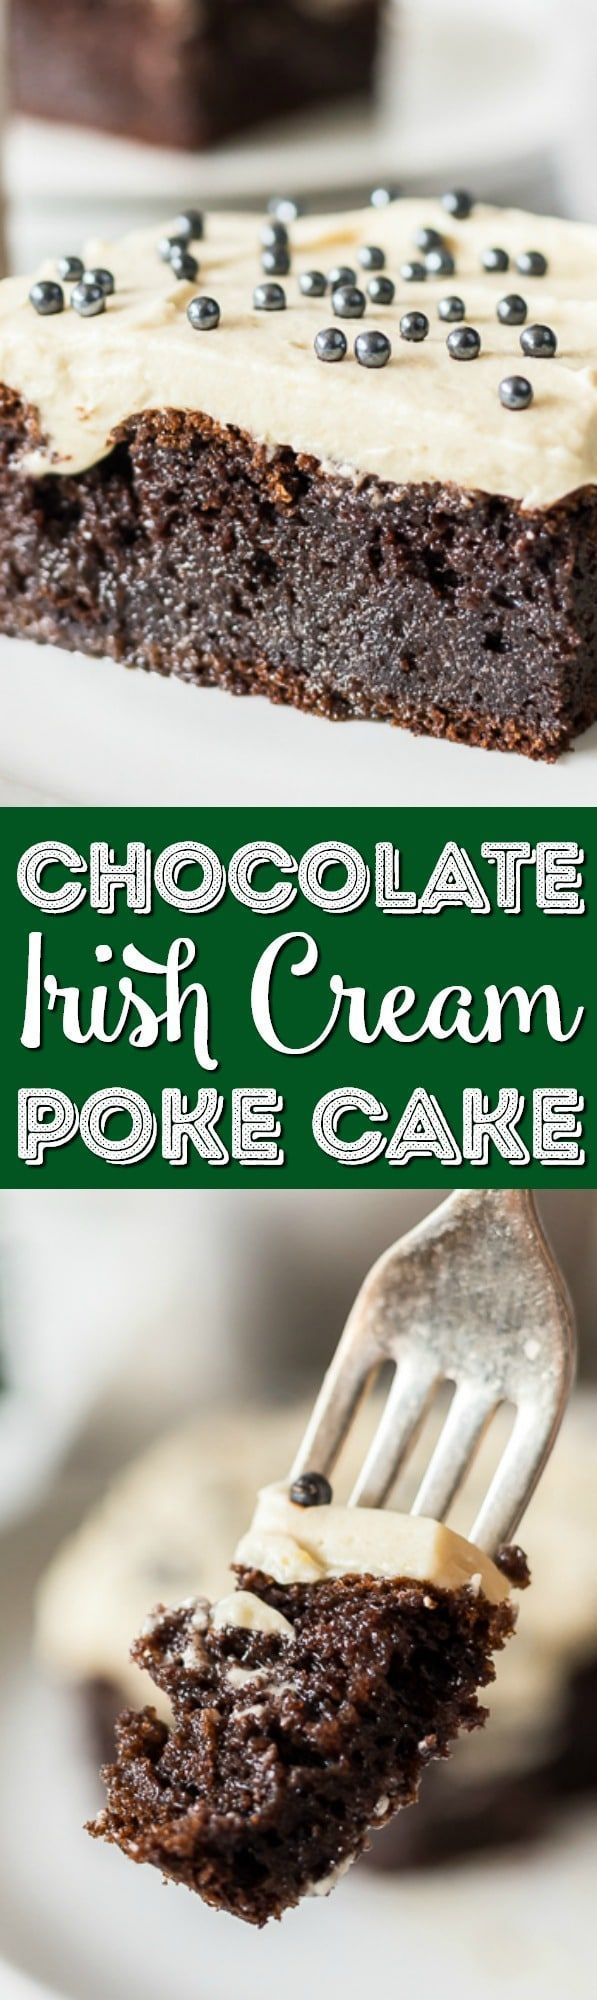 Chocolate Irish Cream Cake is made with a generous dose of Irish cream and topped with a fluffy, pudding-based frosting. This grown-up dessert is moist, rich, and oh-so-boozy! #irishcream #chocolate #cake #alcohol #stpatricksday